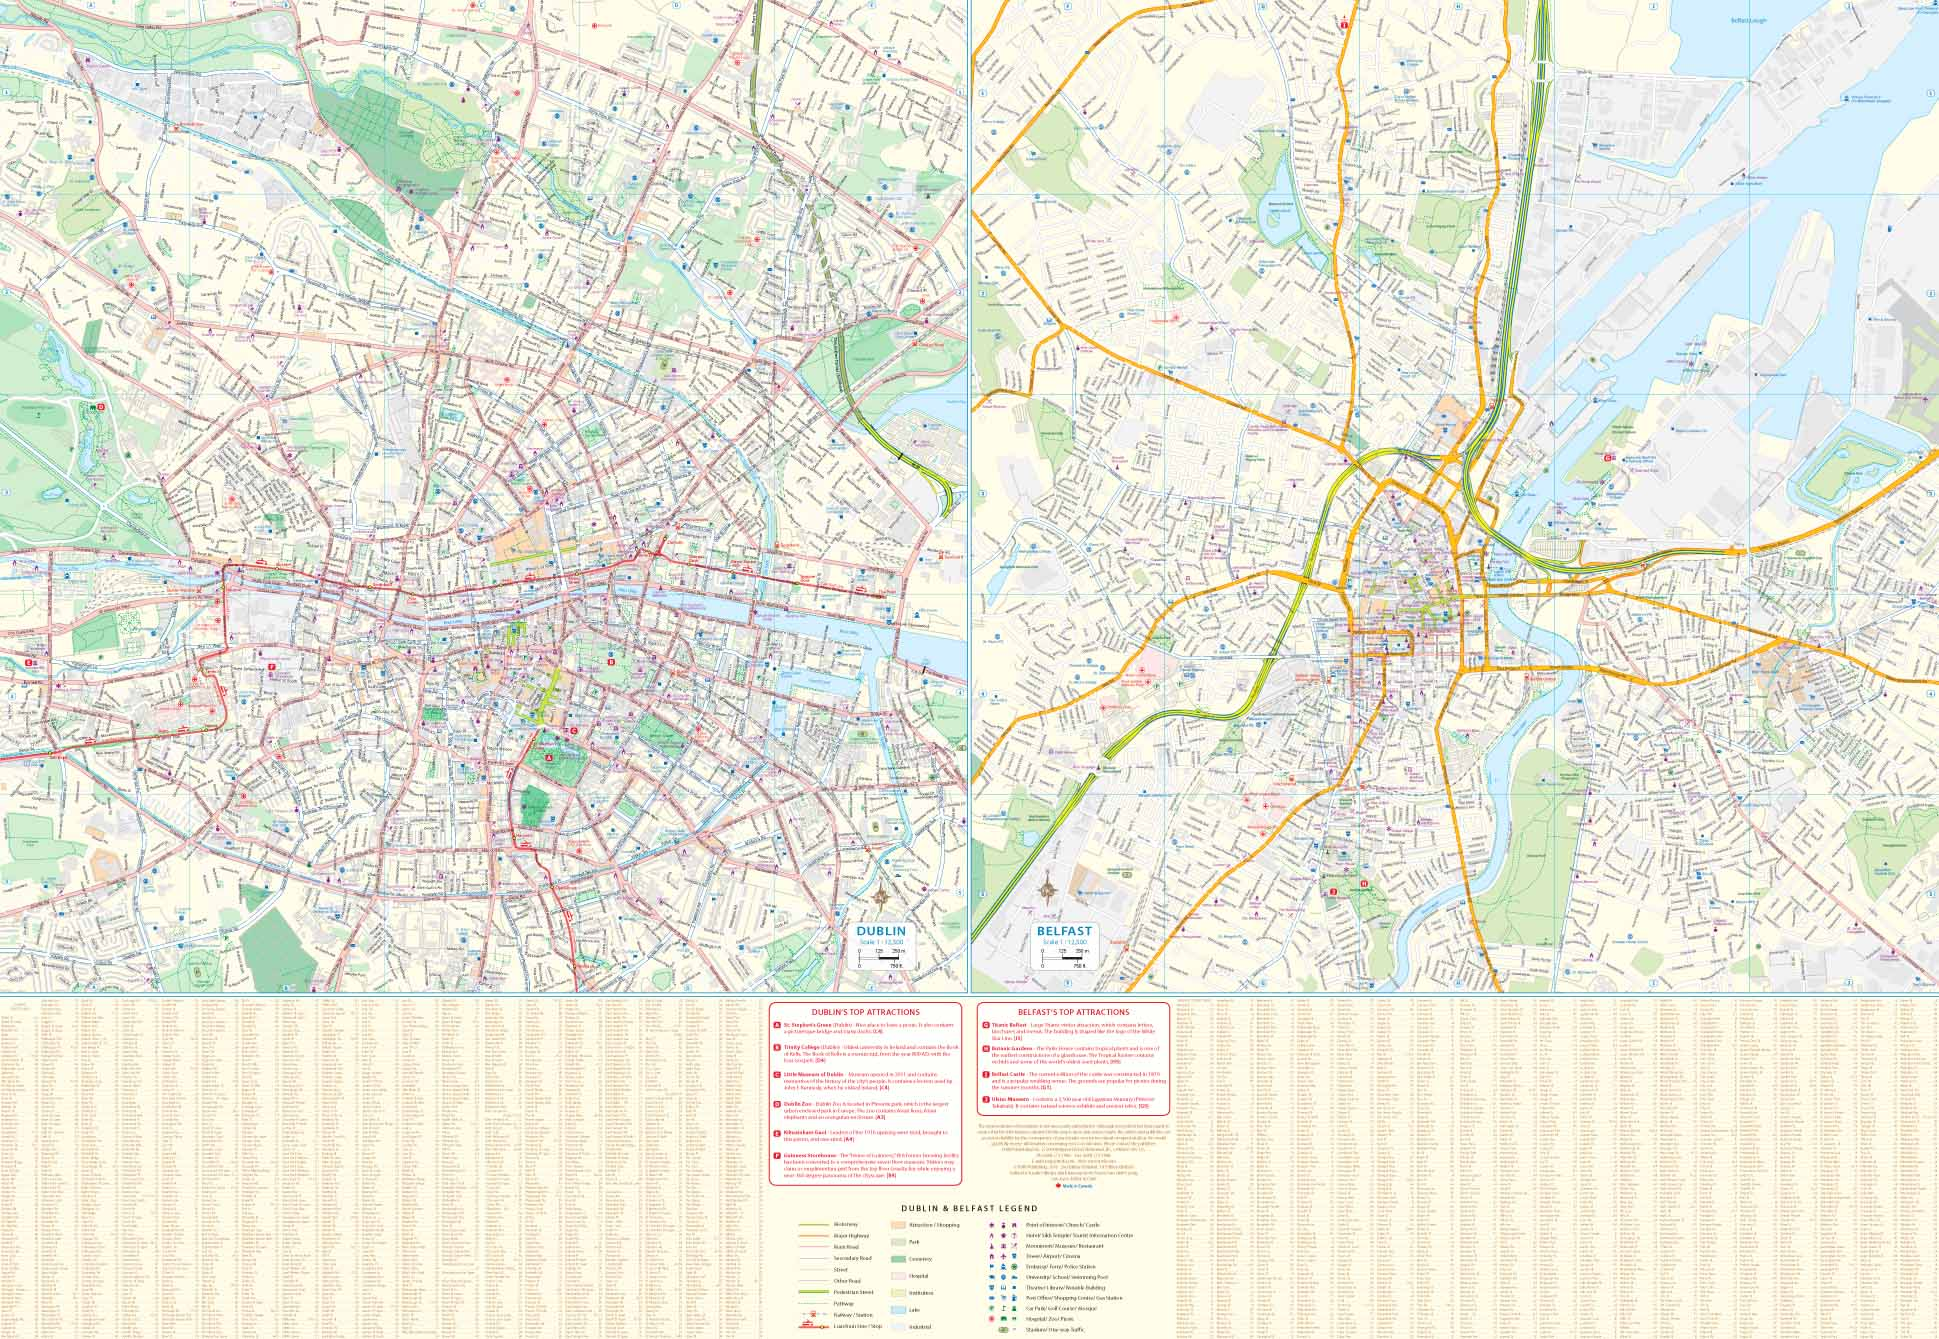 City Map Of Dublin Ireland.Ireland Including Dublin Belfast Street Map Itm Travel Map